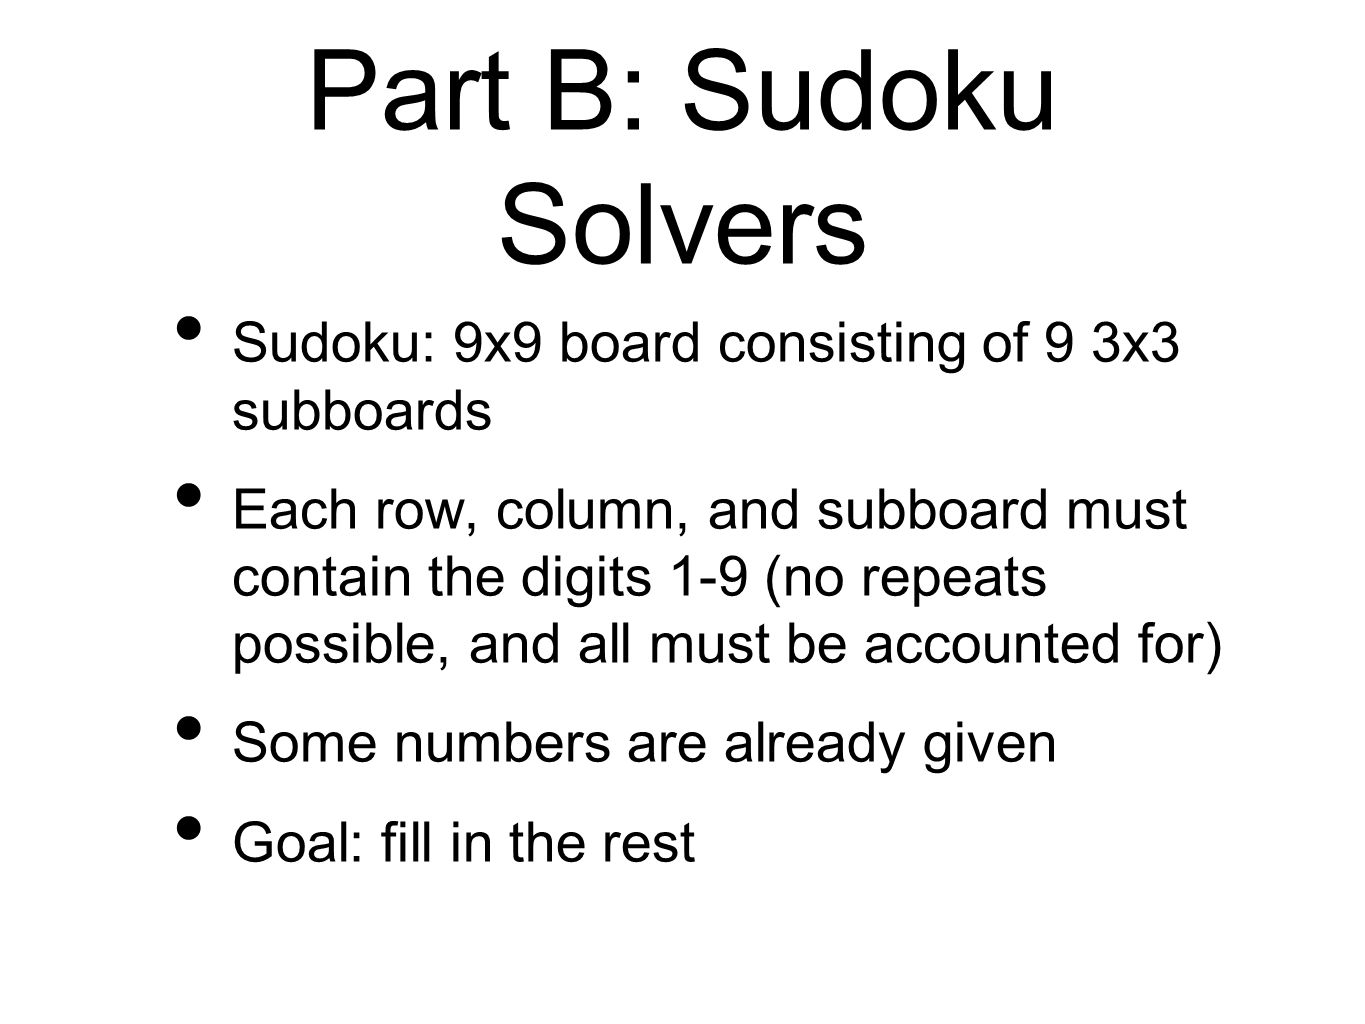 Part B: Sudoku Solvers Sudoku: 9x9 board consisting of 9 3x3 subboards Each row, column, and subboard must contain the digits 1-9 (no repeats possible